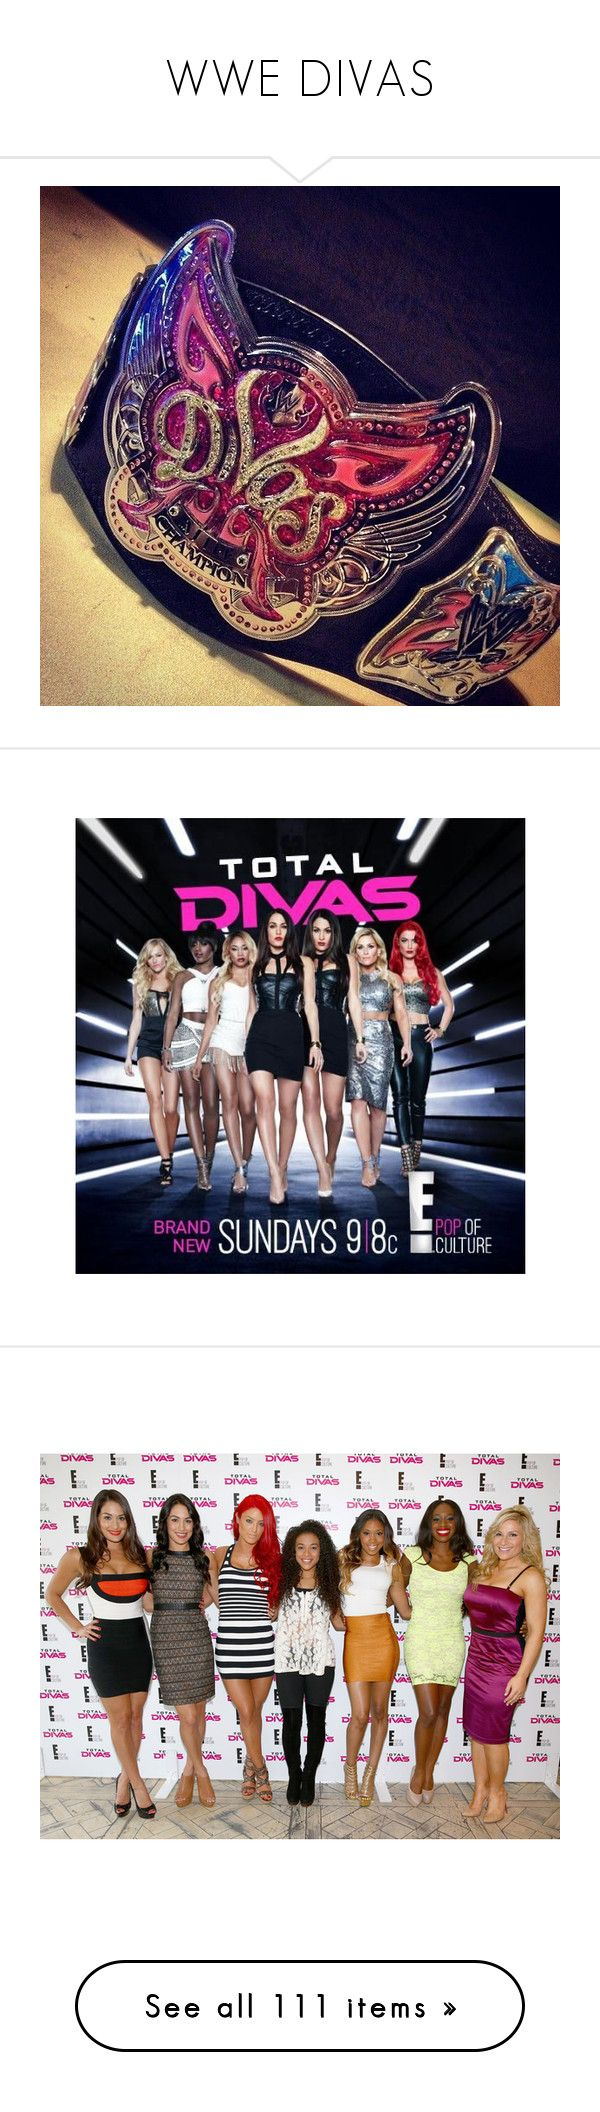 """""""WWE DIVAS"""" by adelaida0912 ❤ liked on Polyvore featuring wwe, divas, paige, nikki bella, people, aj lee, wwe stars, pictures, wrestling and wwe divas"""